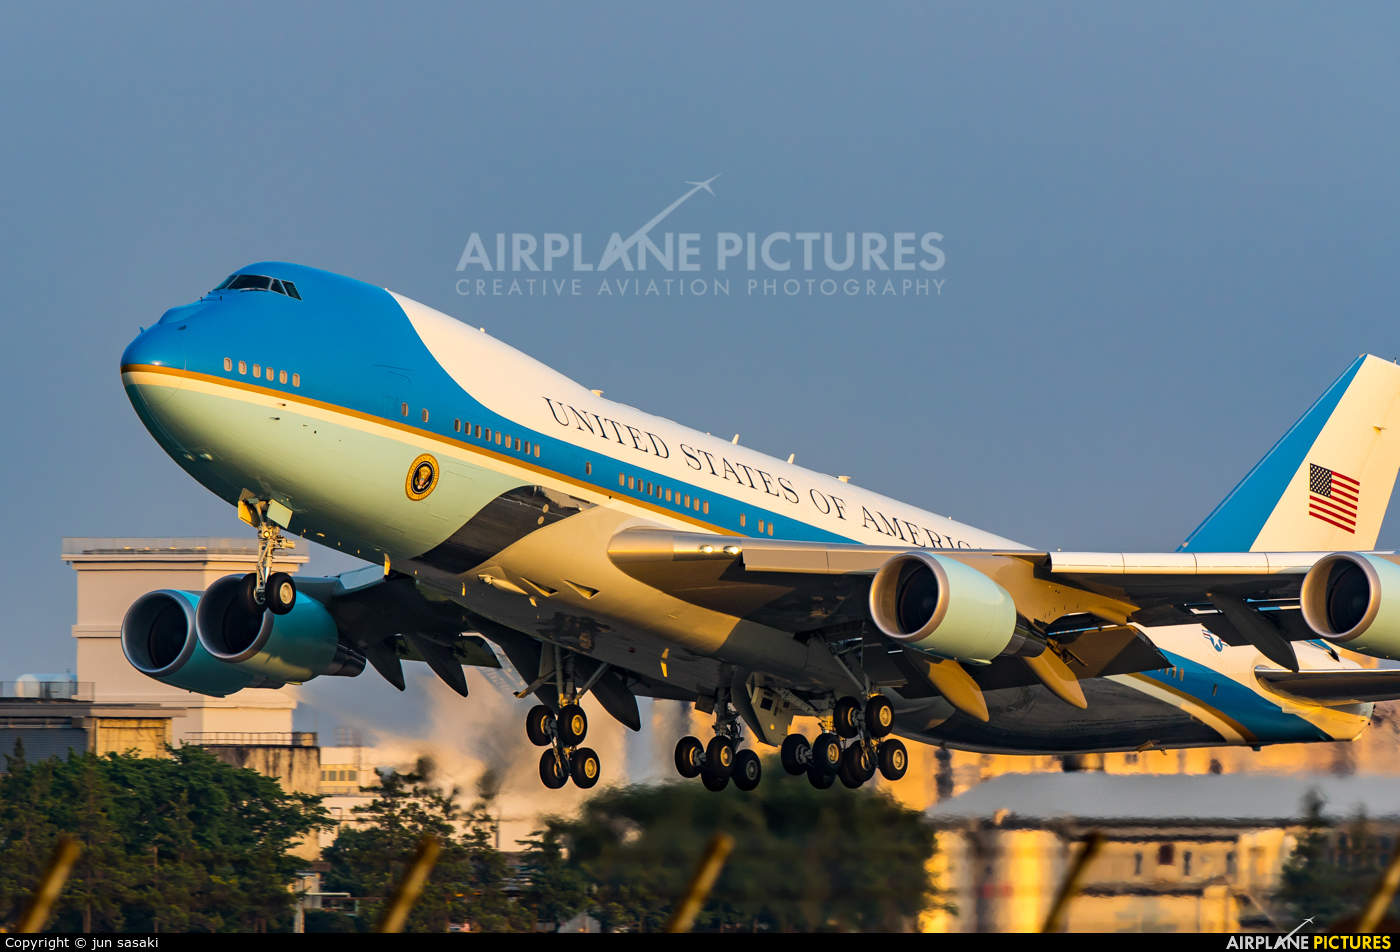 Shooting at Andrews AFB (home of Air Force One)